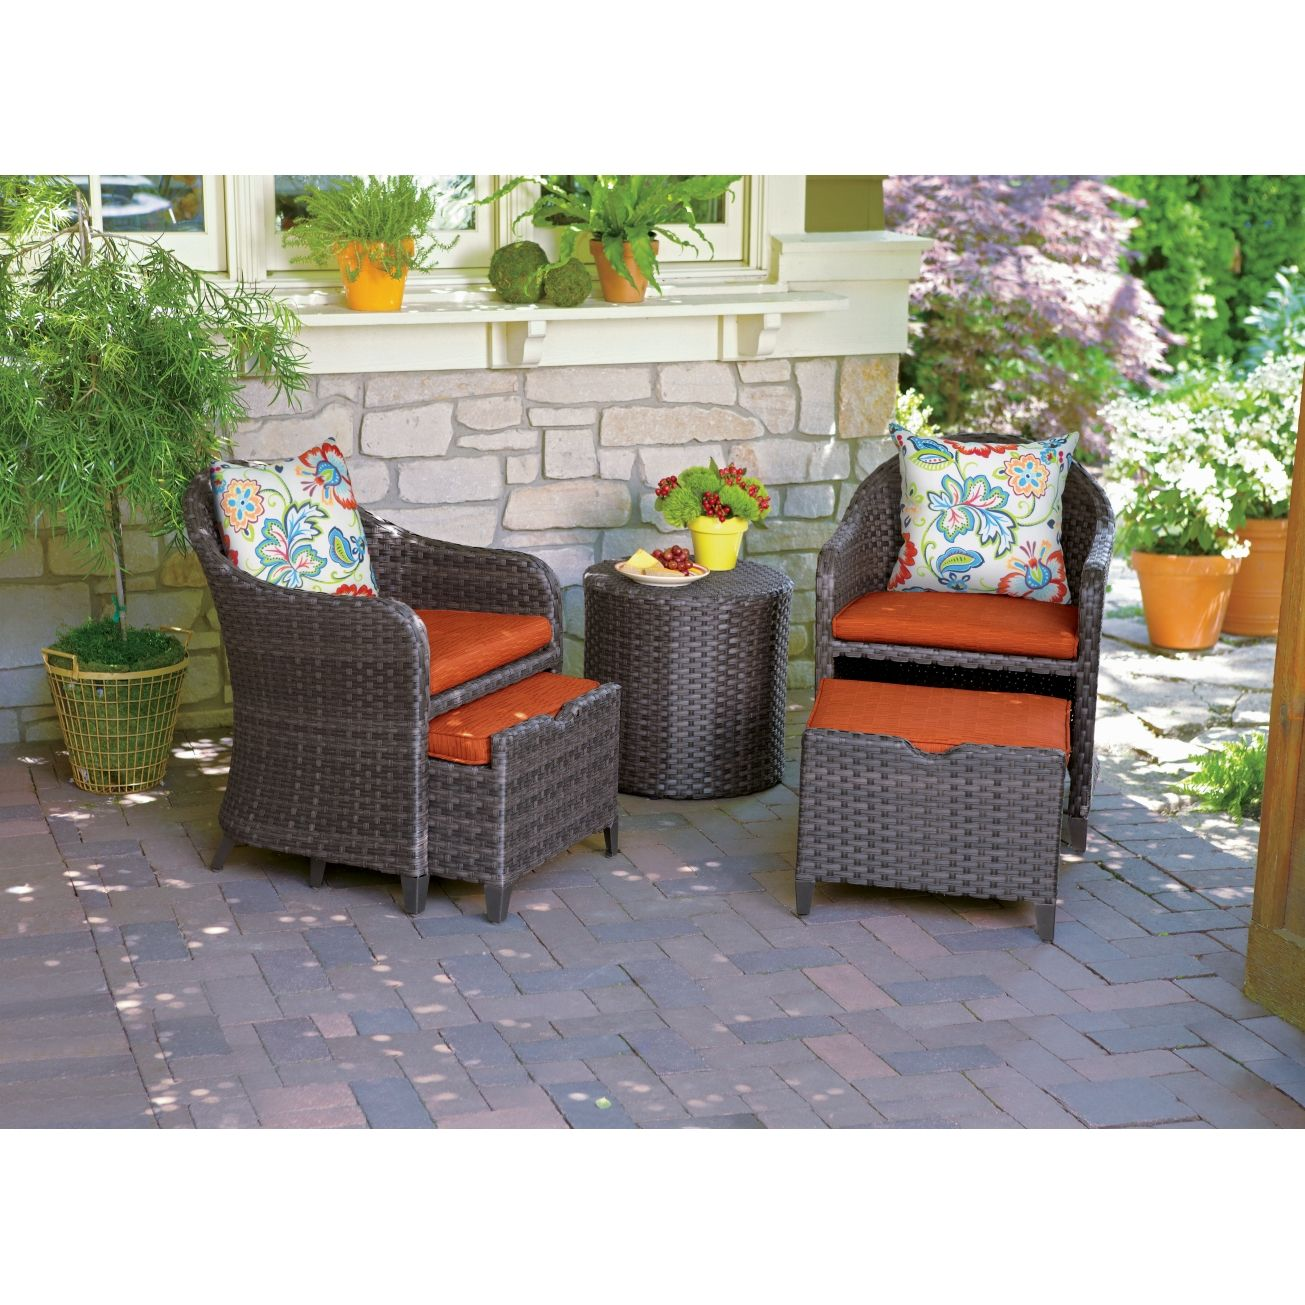 Seabrook 5 Pc Wicker Chat Set W/Pull Out Ottomans   All Patio Collections